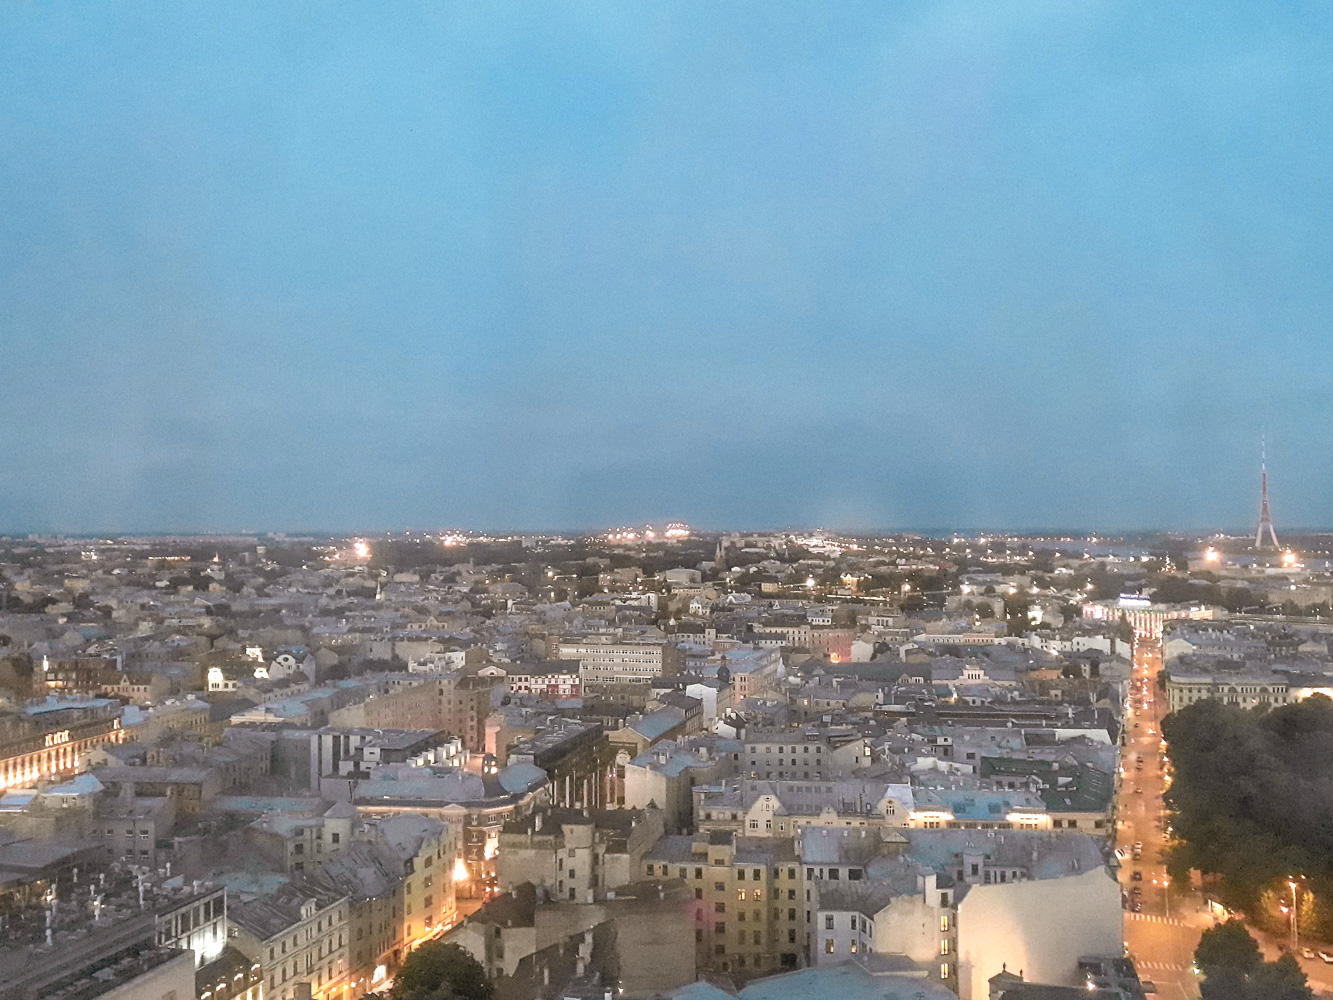 Riga attractions, seeing Riga from above